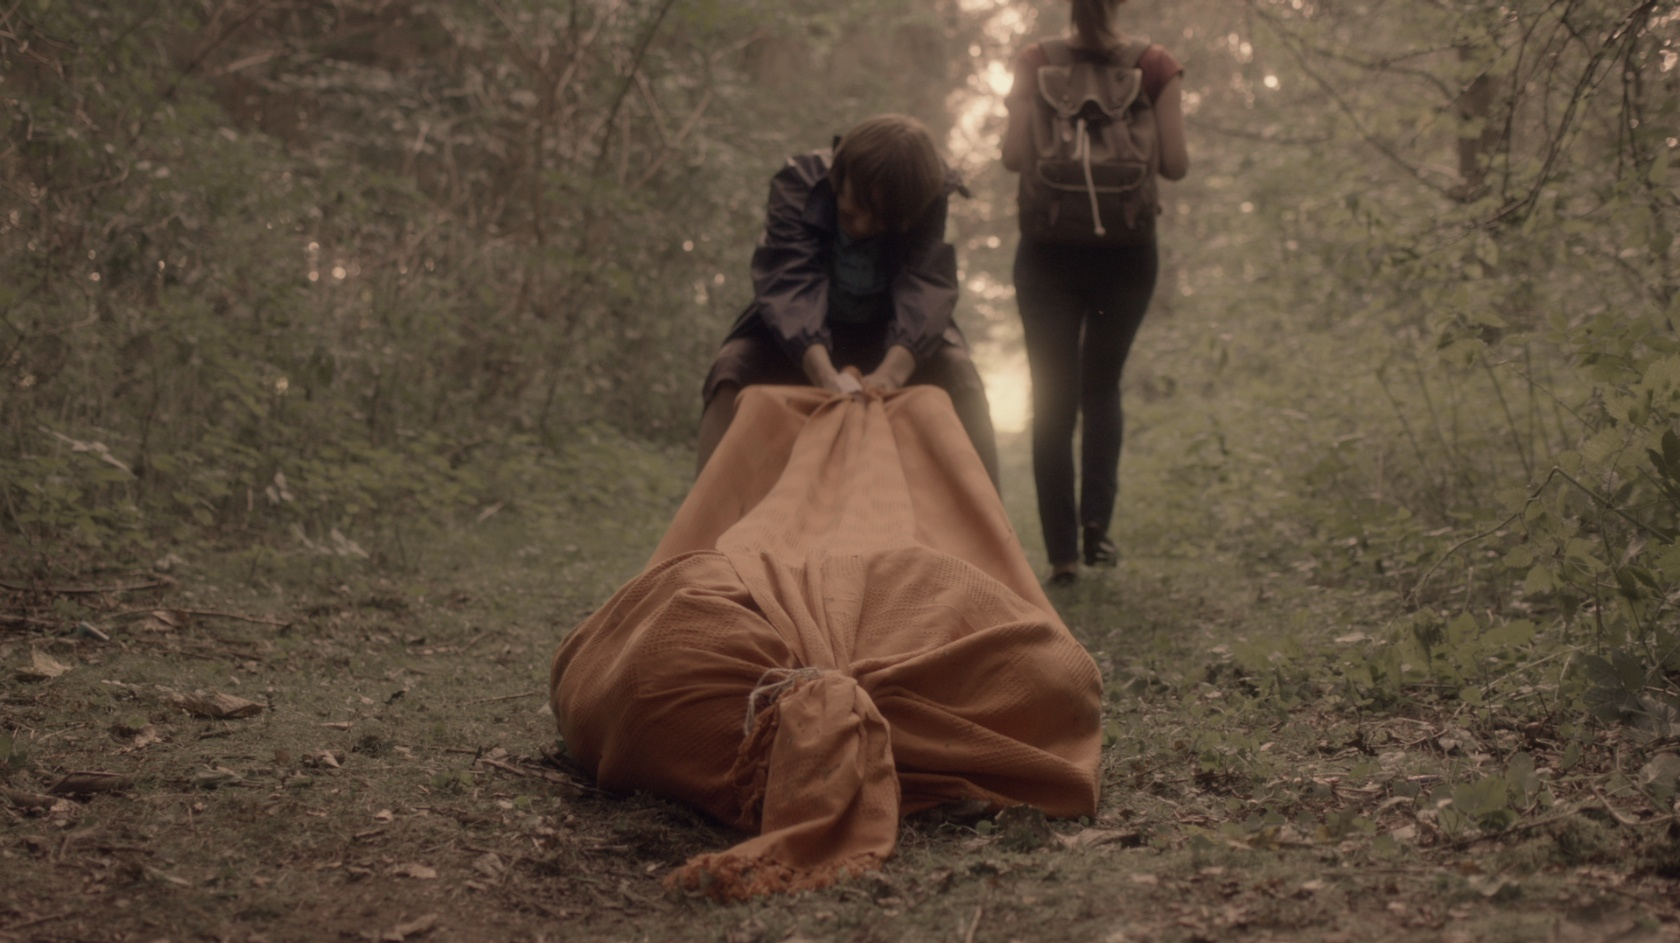 A boy and girl drag a body bag through the woods